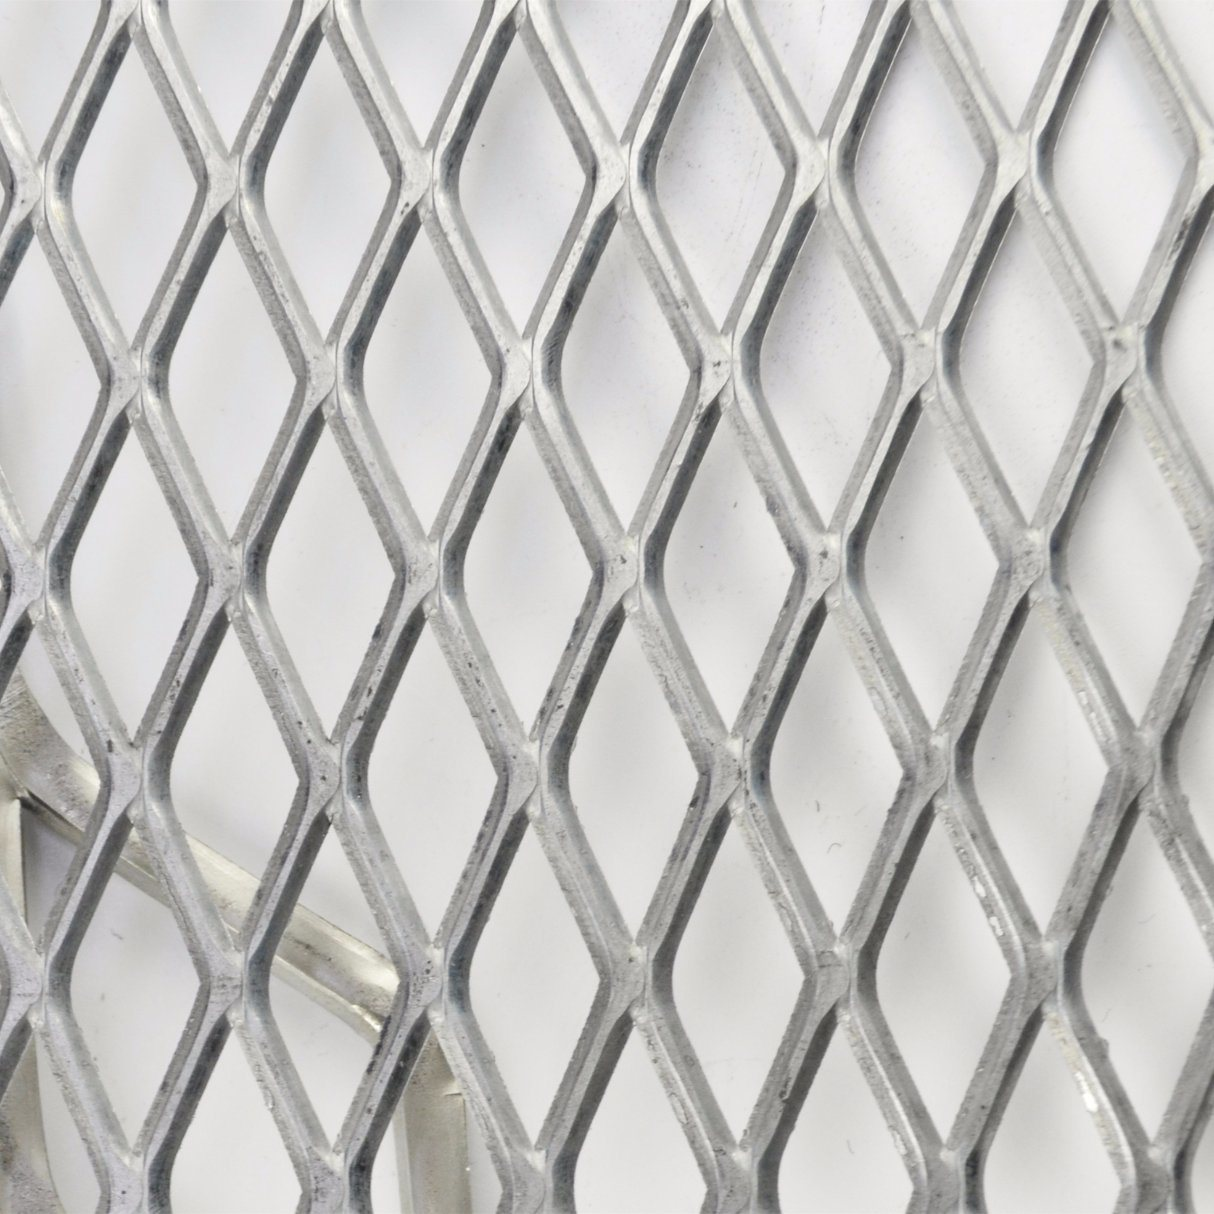 Fine Pvc Coated Wire Mesh Sheets Image Collection - Wiring Diagram ...